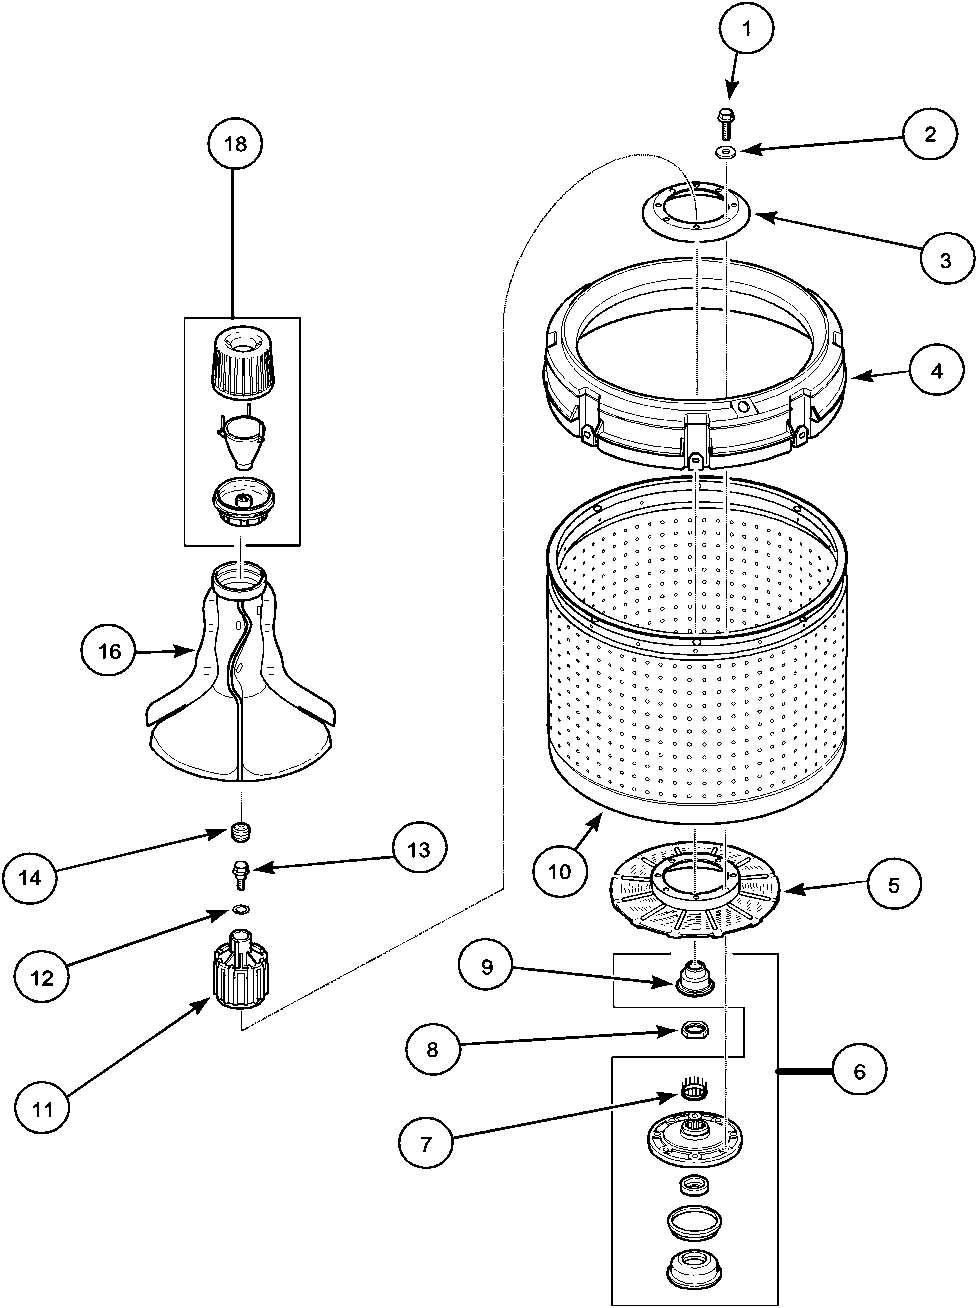 Appliance on lg wiring diagram